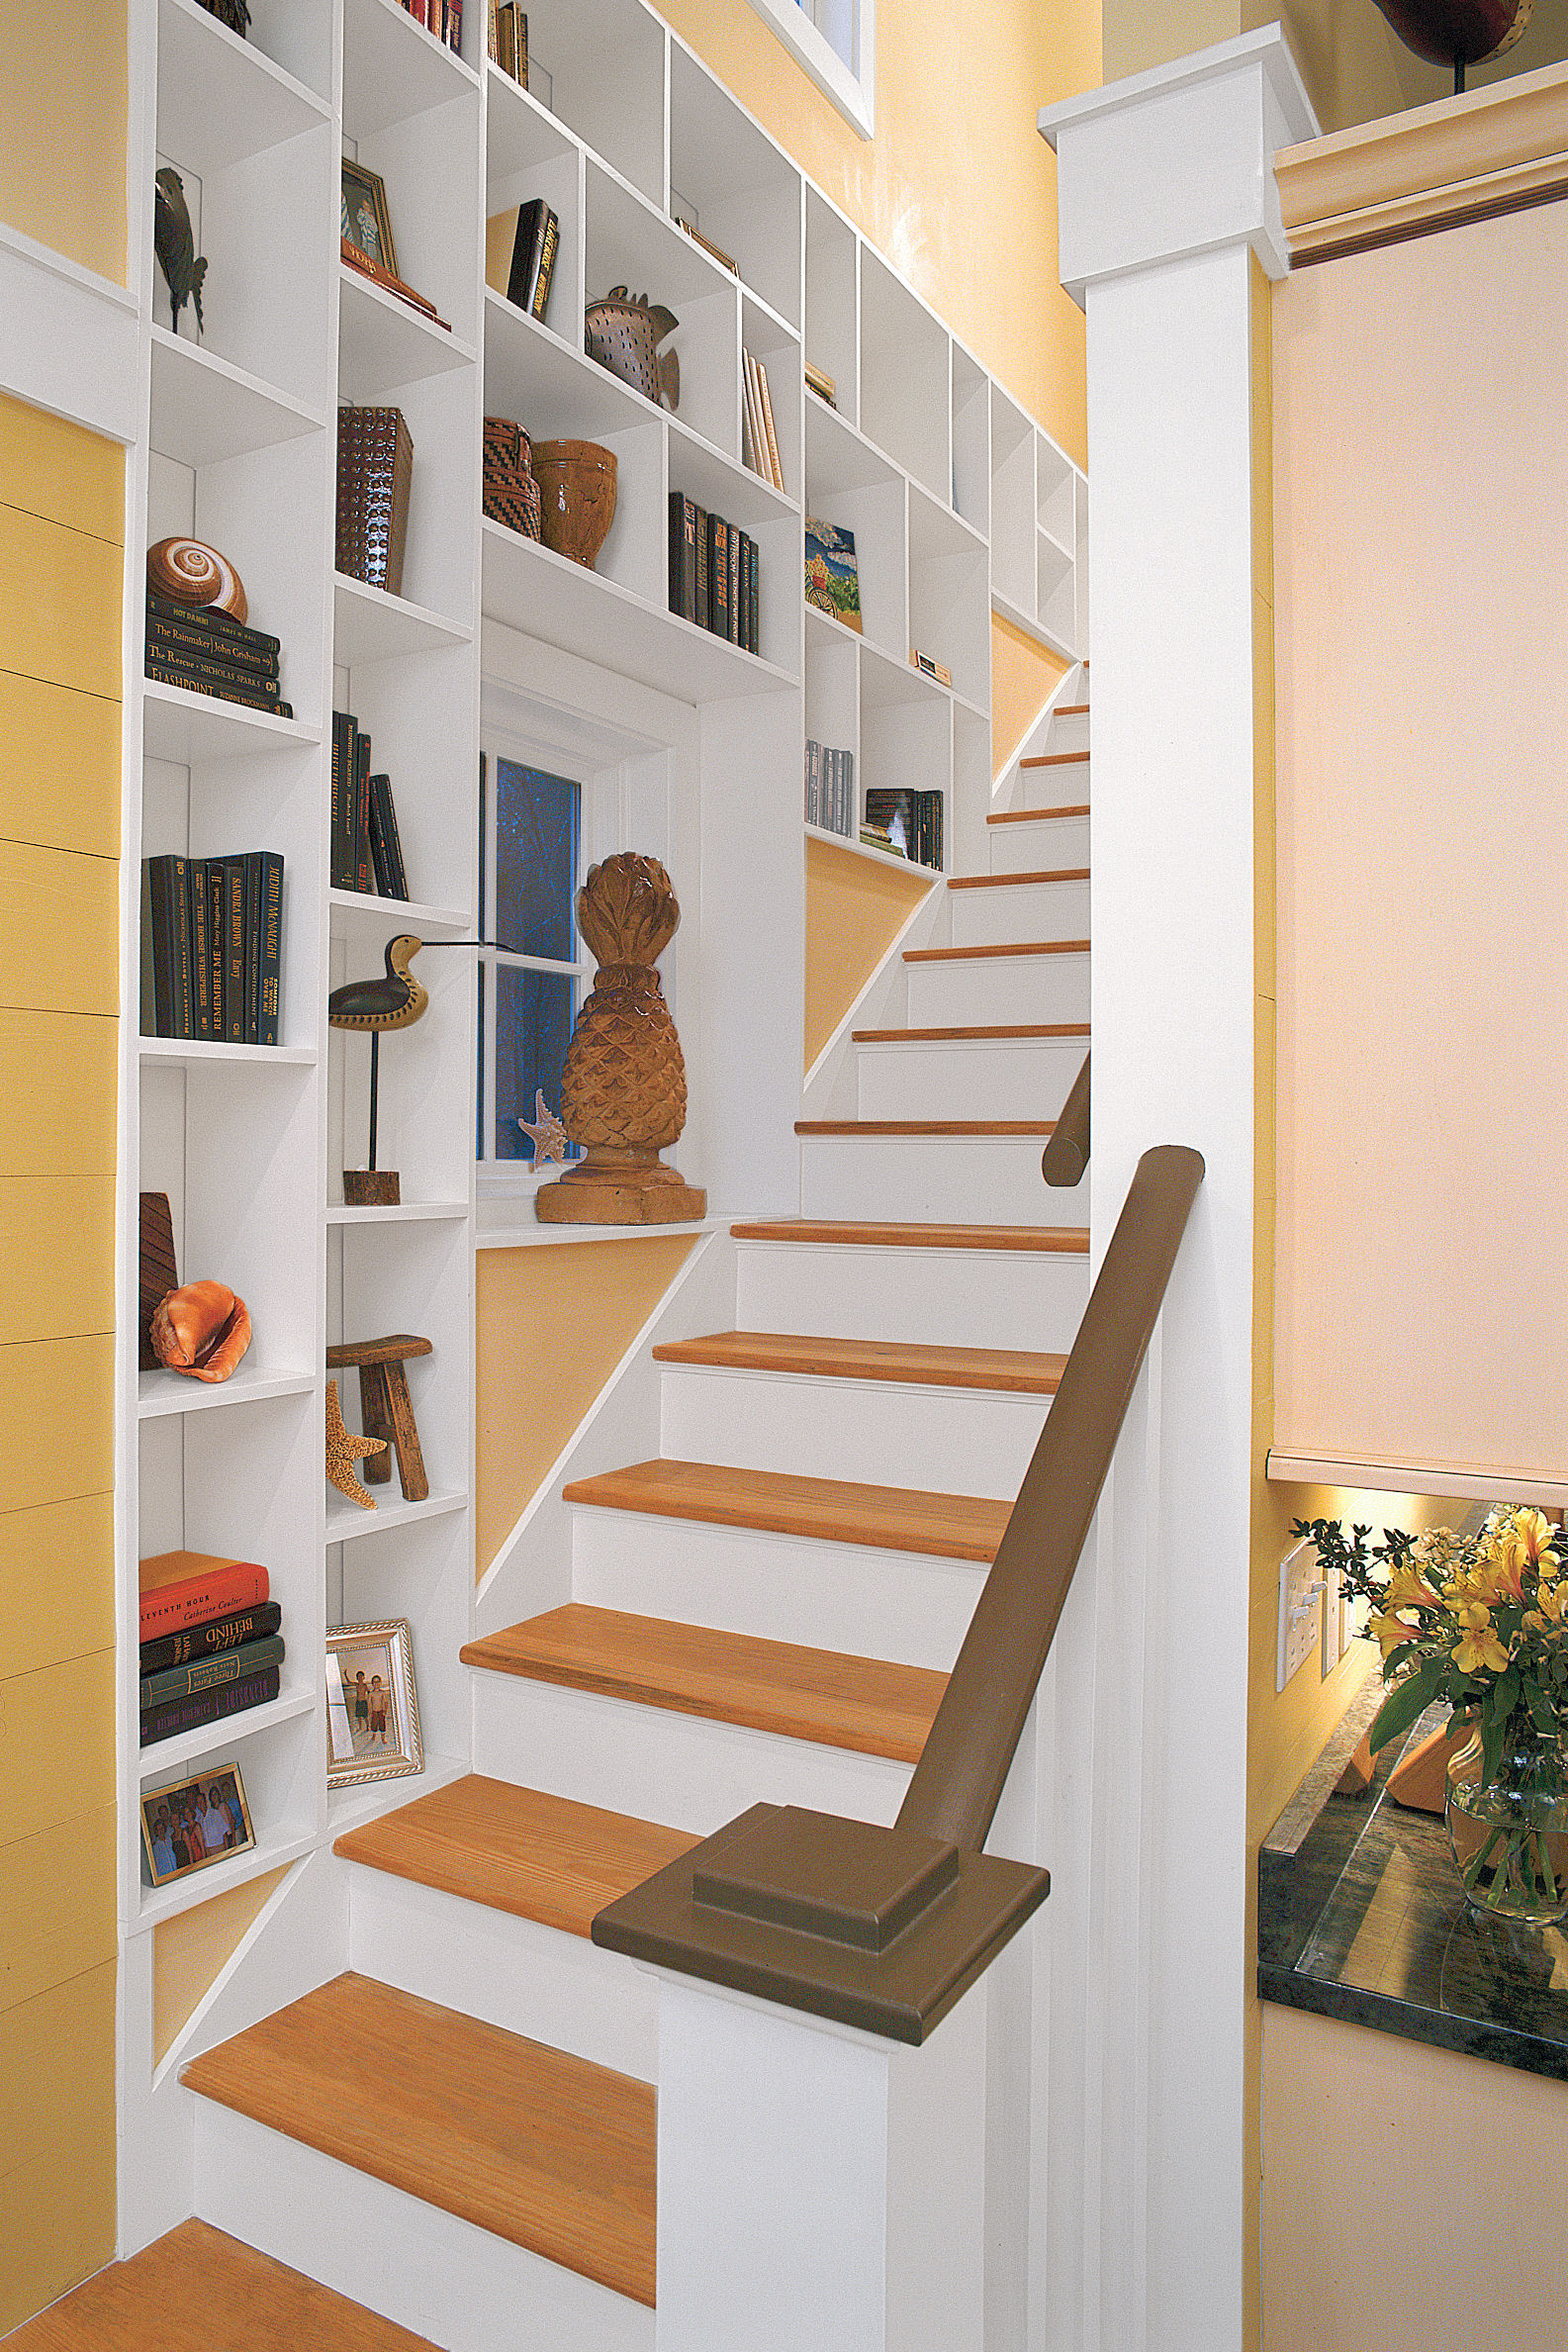 Clever Storage by the Stairs